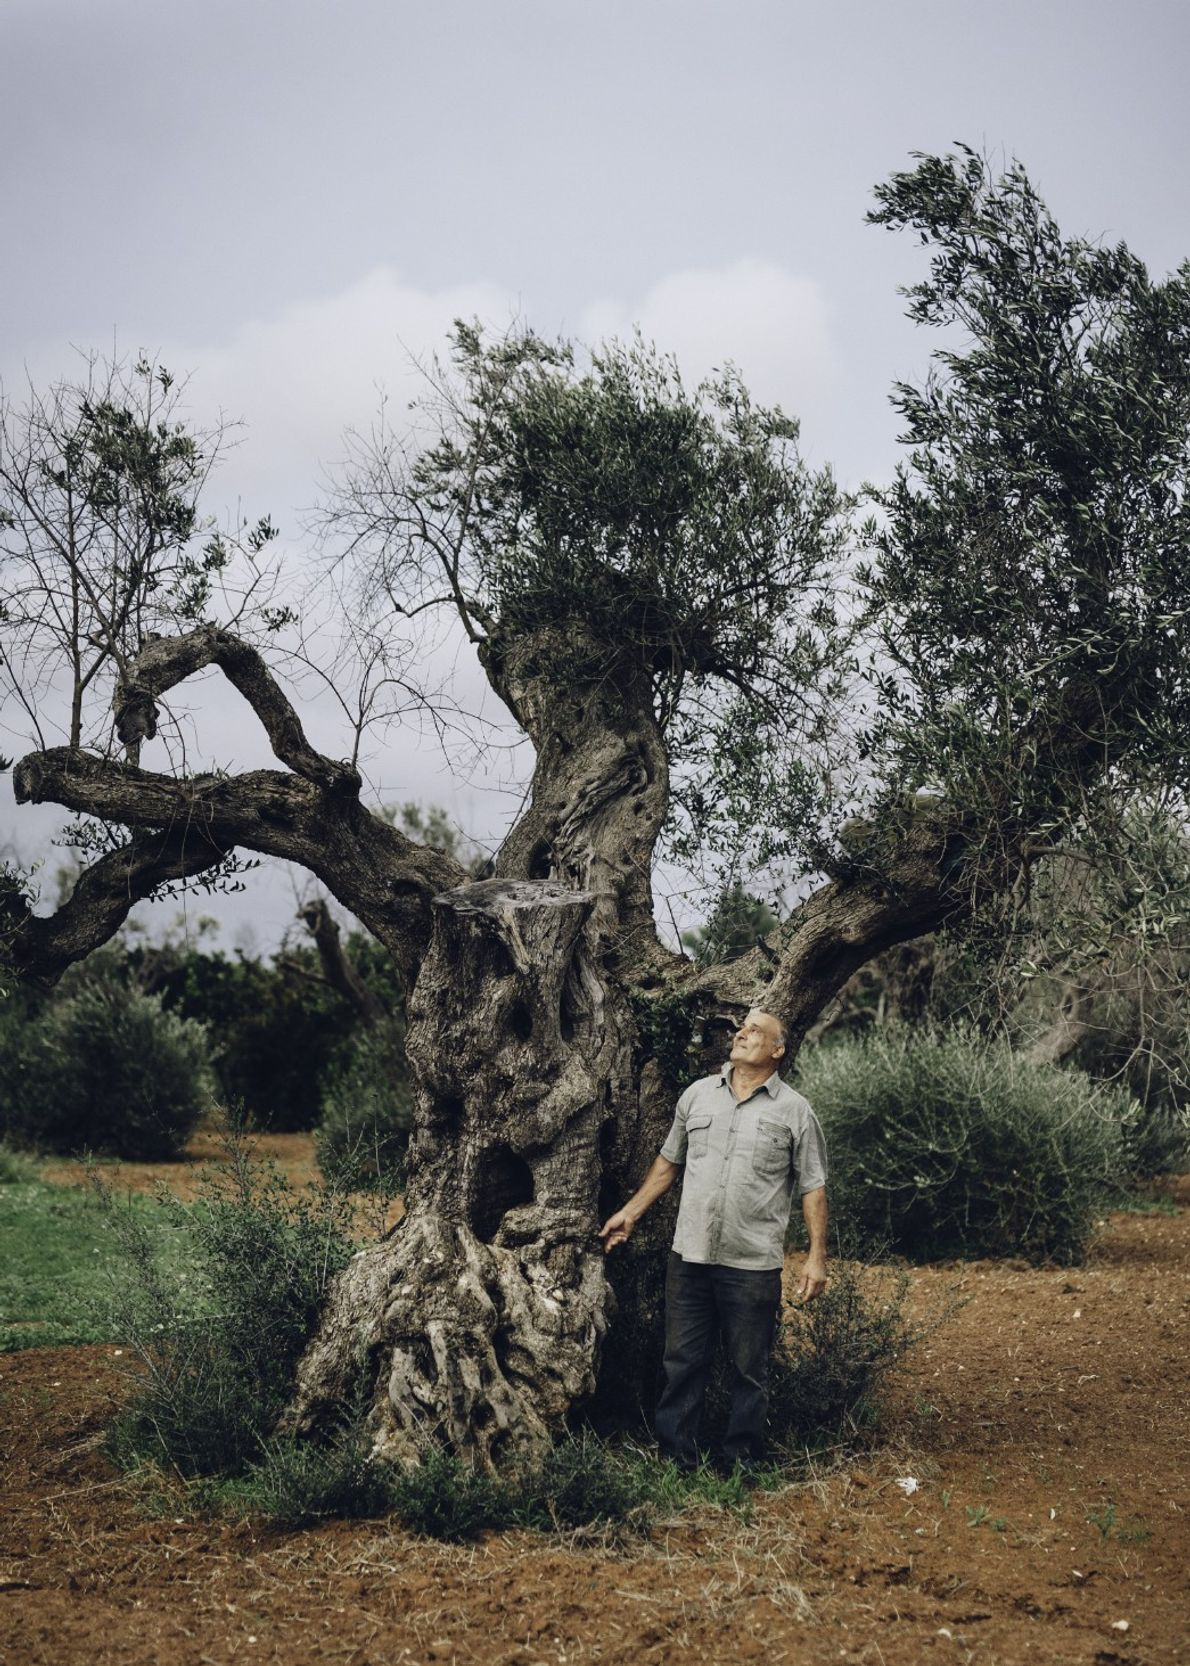 Cosimino de Luca was one of the first people to notice brown, withering leaves on his ...